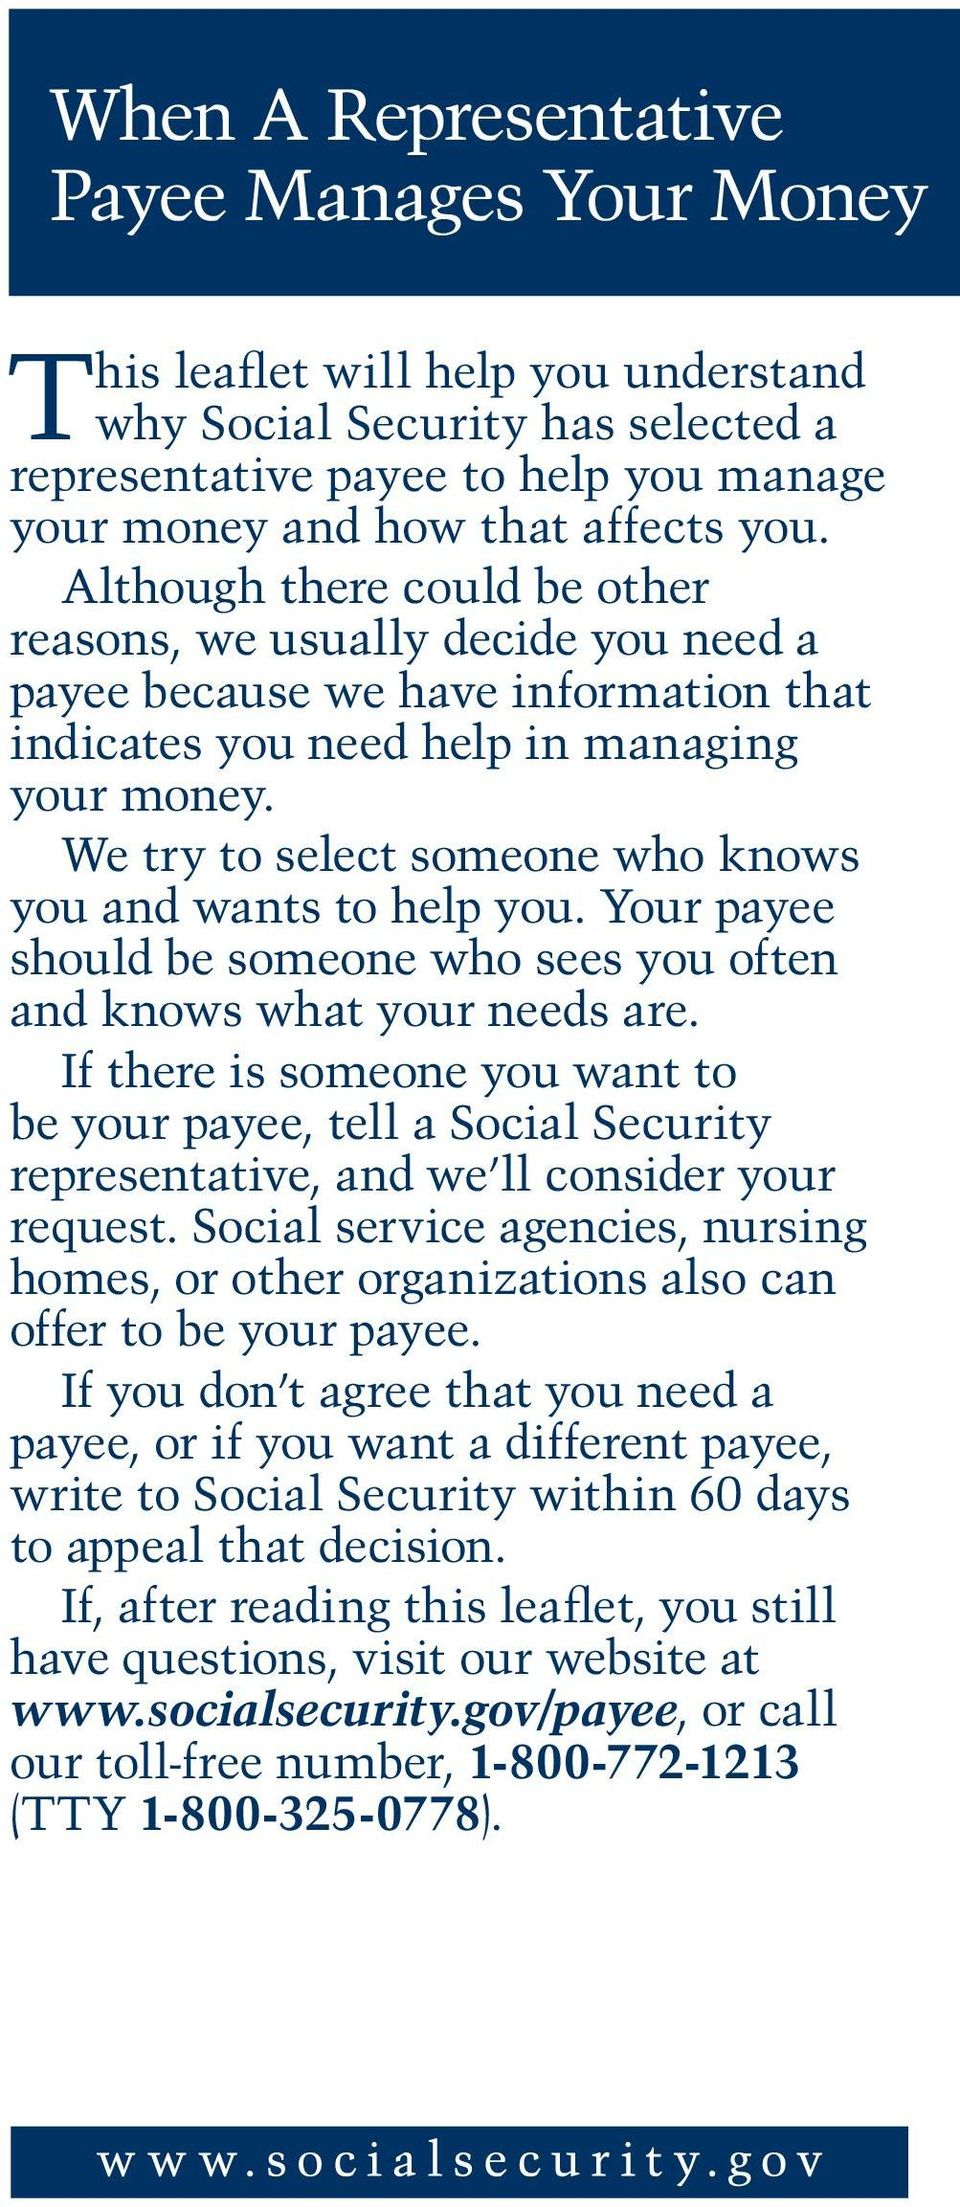 We try to select someone who knows you and wants to help you. Your payee should be someone who sees you often and knows what your needs are.